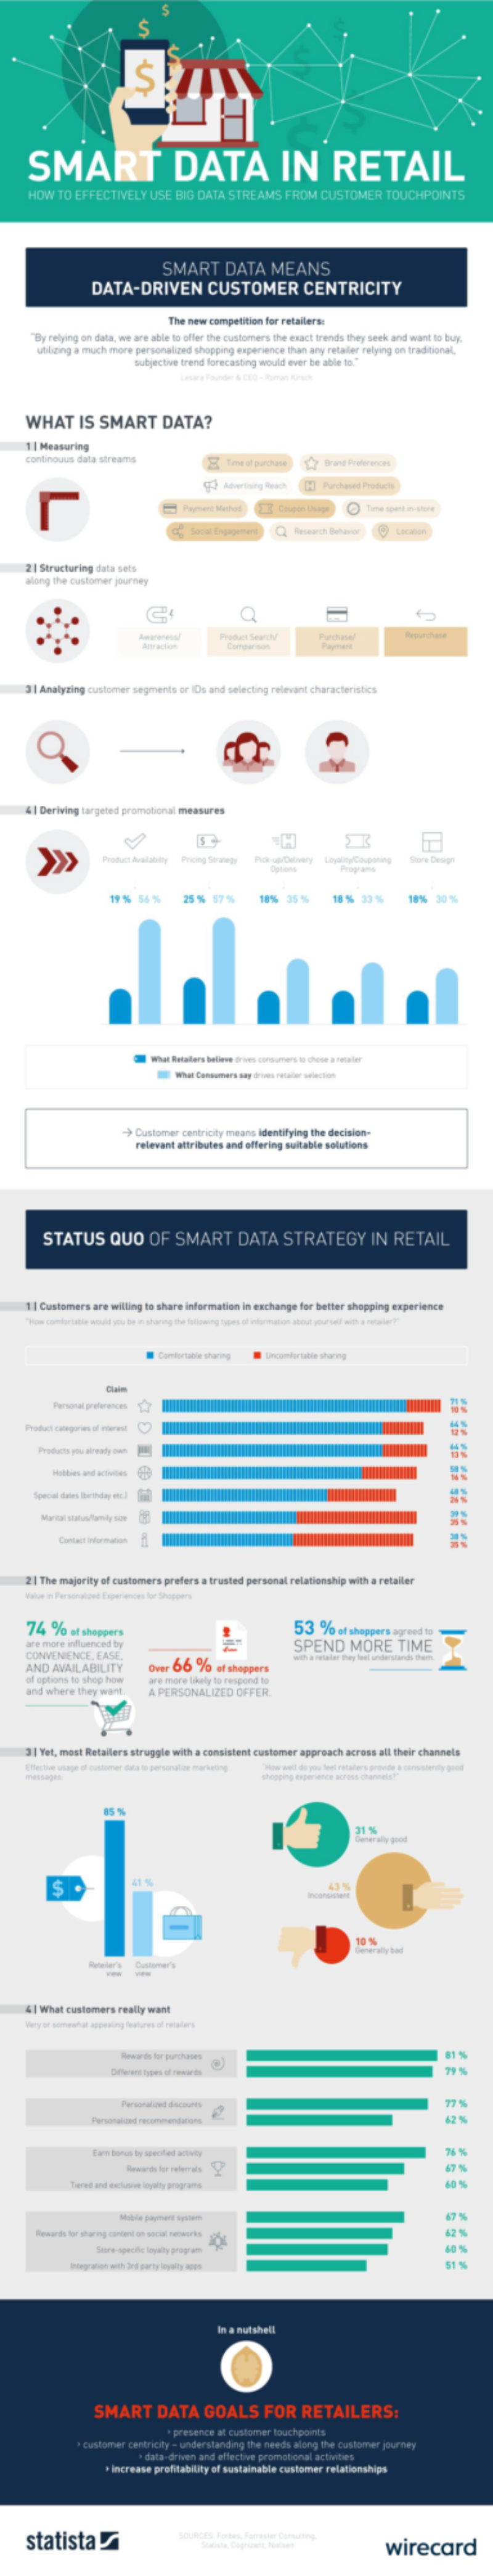 Smart data in retail